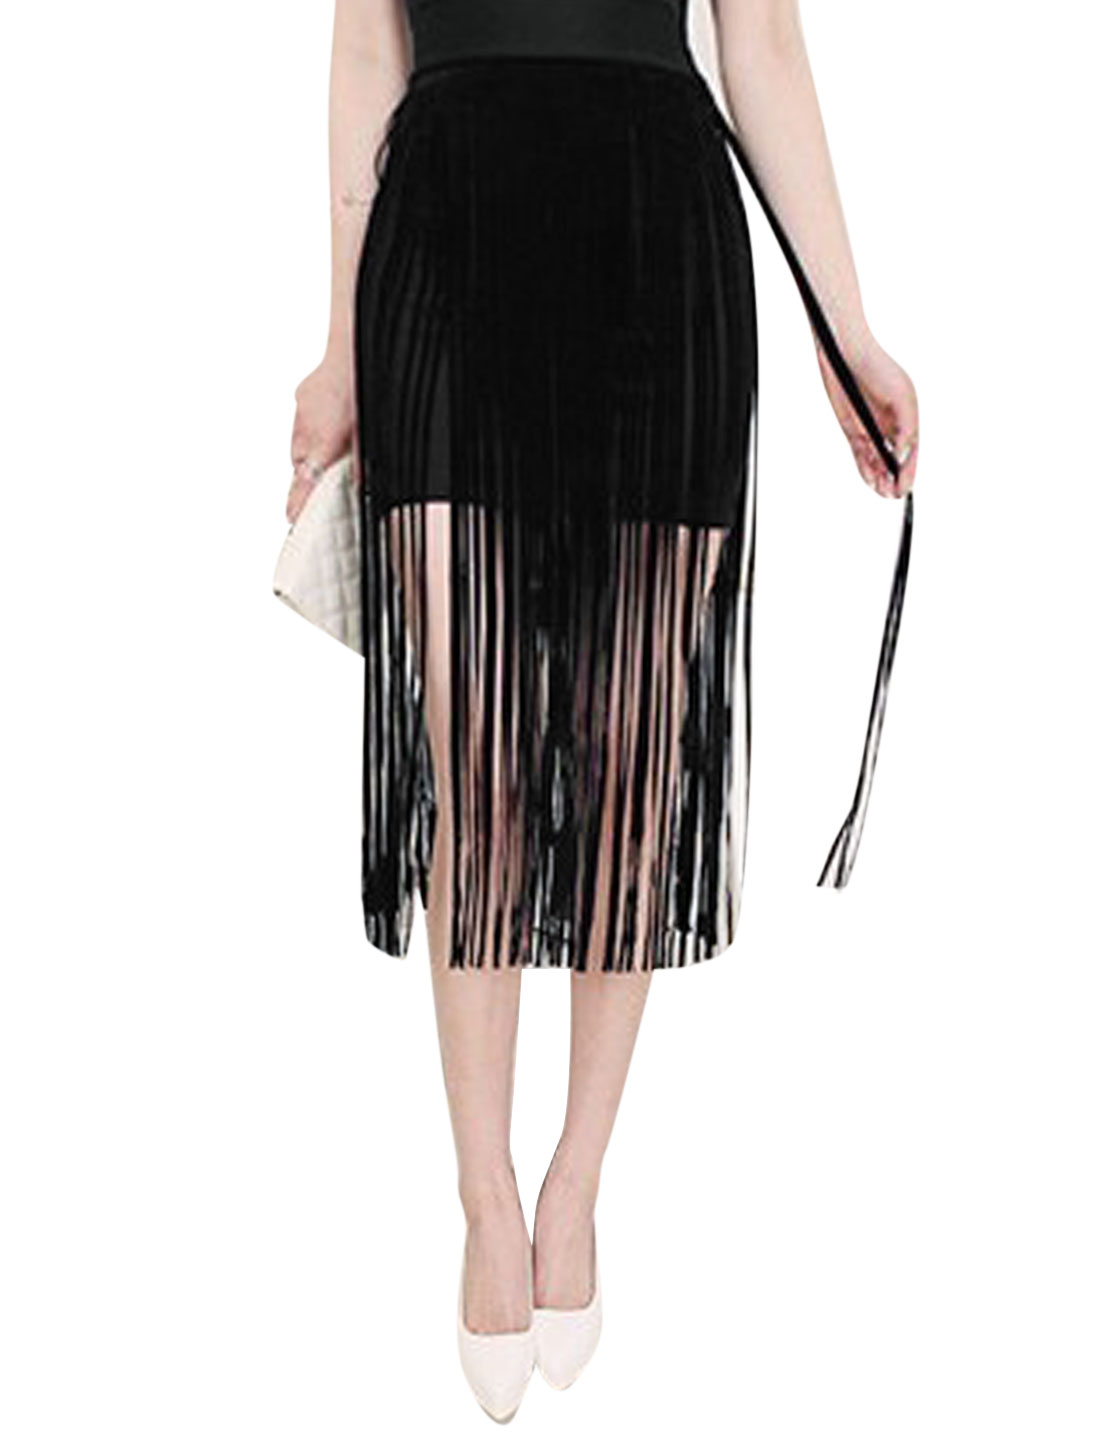 Women Stretchy Waist Band Unlined Fringed Pencil Skirt Black XS